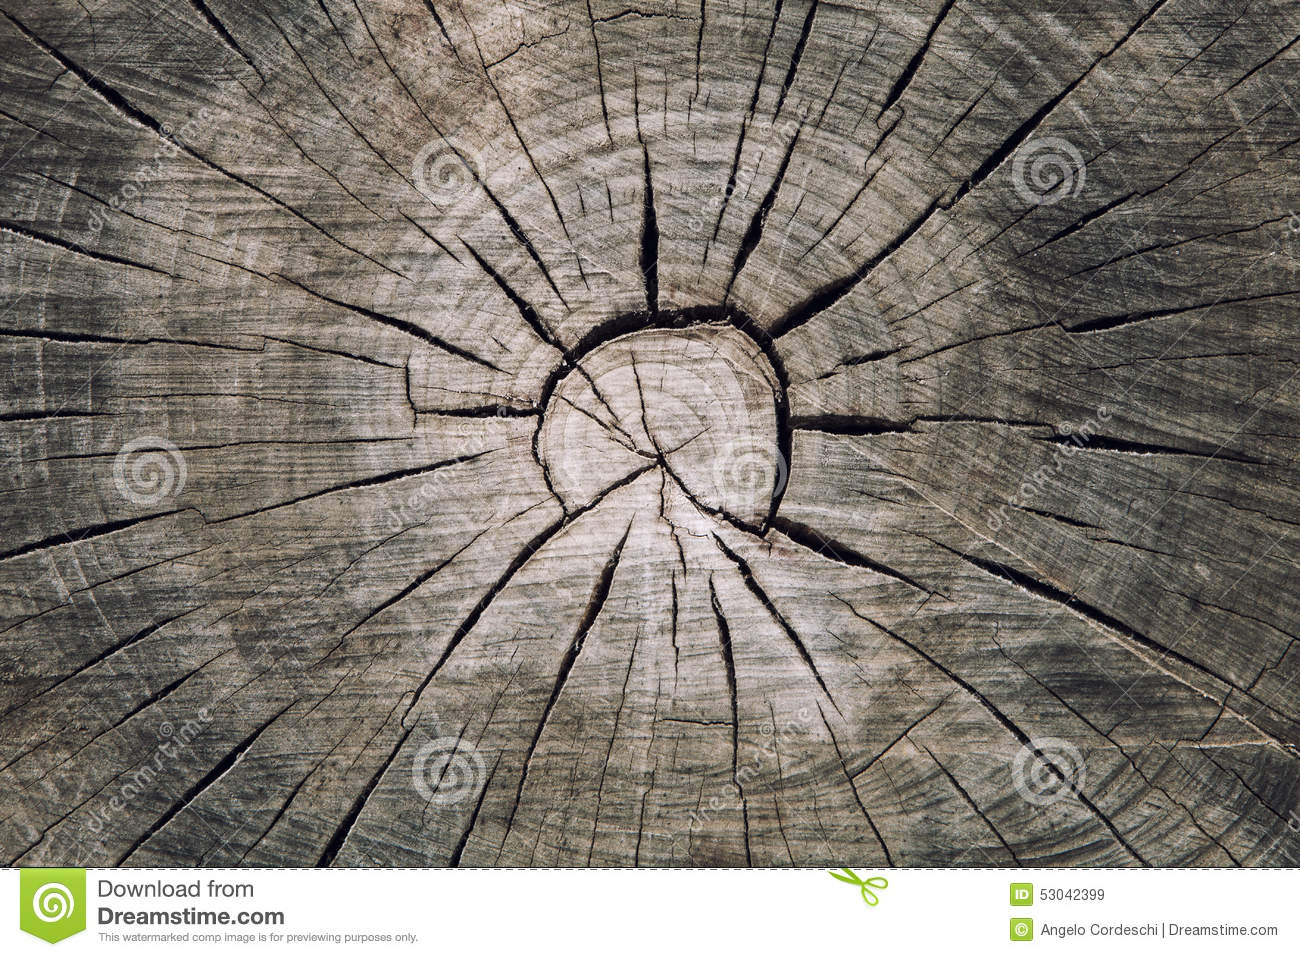 Download Wood Trunk Cross Section With Splits Wood And Rings Concentric Circles Stock Image - Image of circle, concentric: 53042399